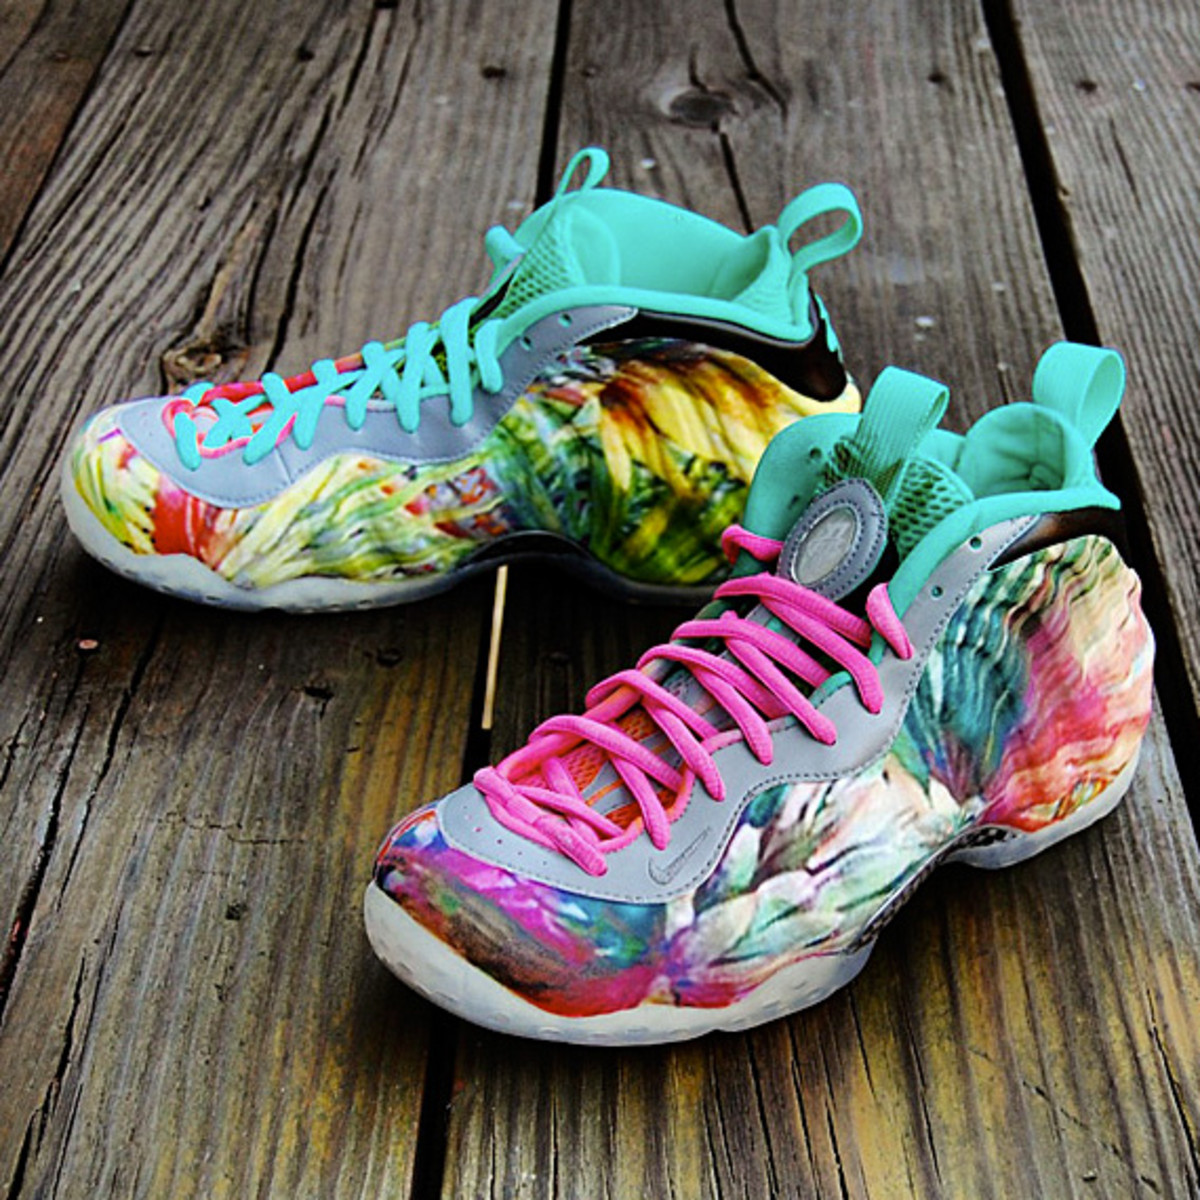 online store 20edf 3ce4e This new customized Nike Air Foamposite One might just dethrone Jeremy  Scott s creations in the category of ostentatiousness.